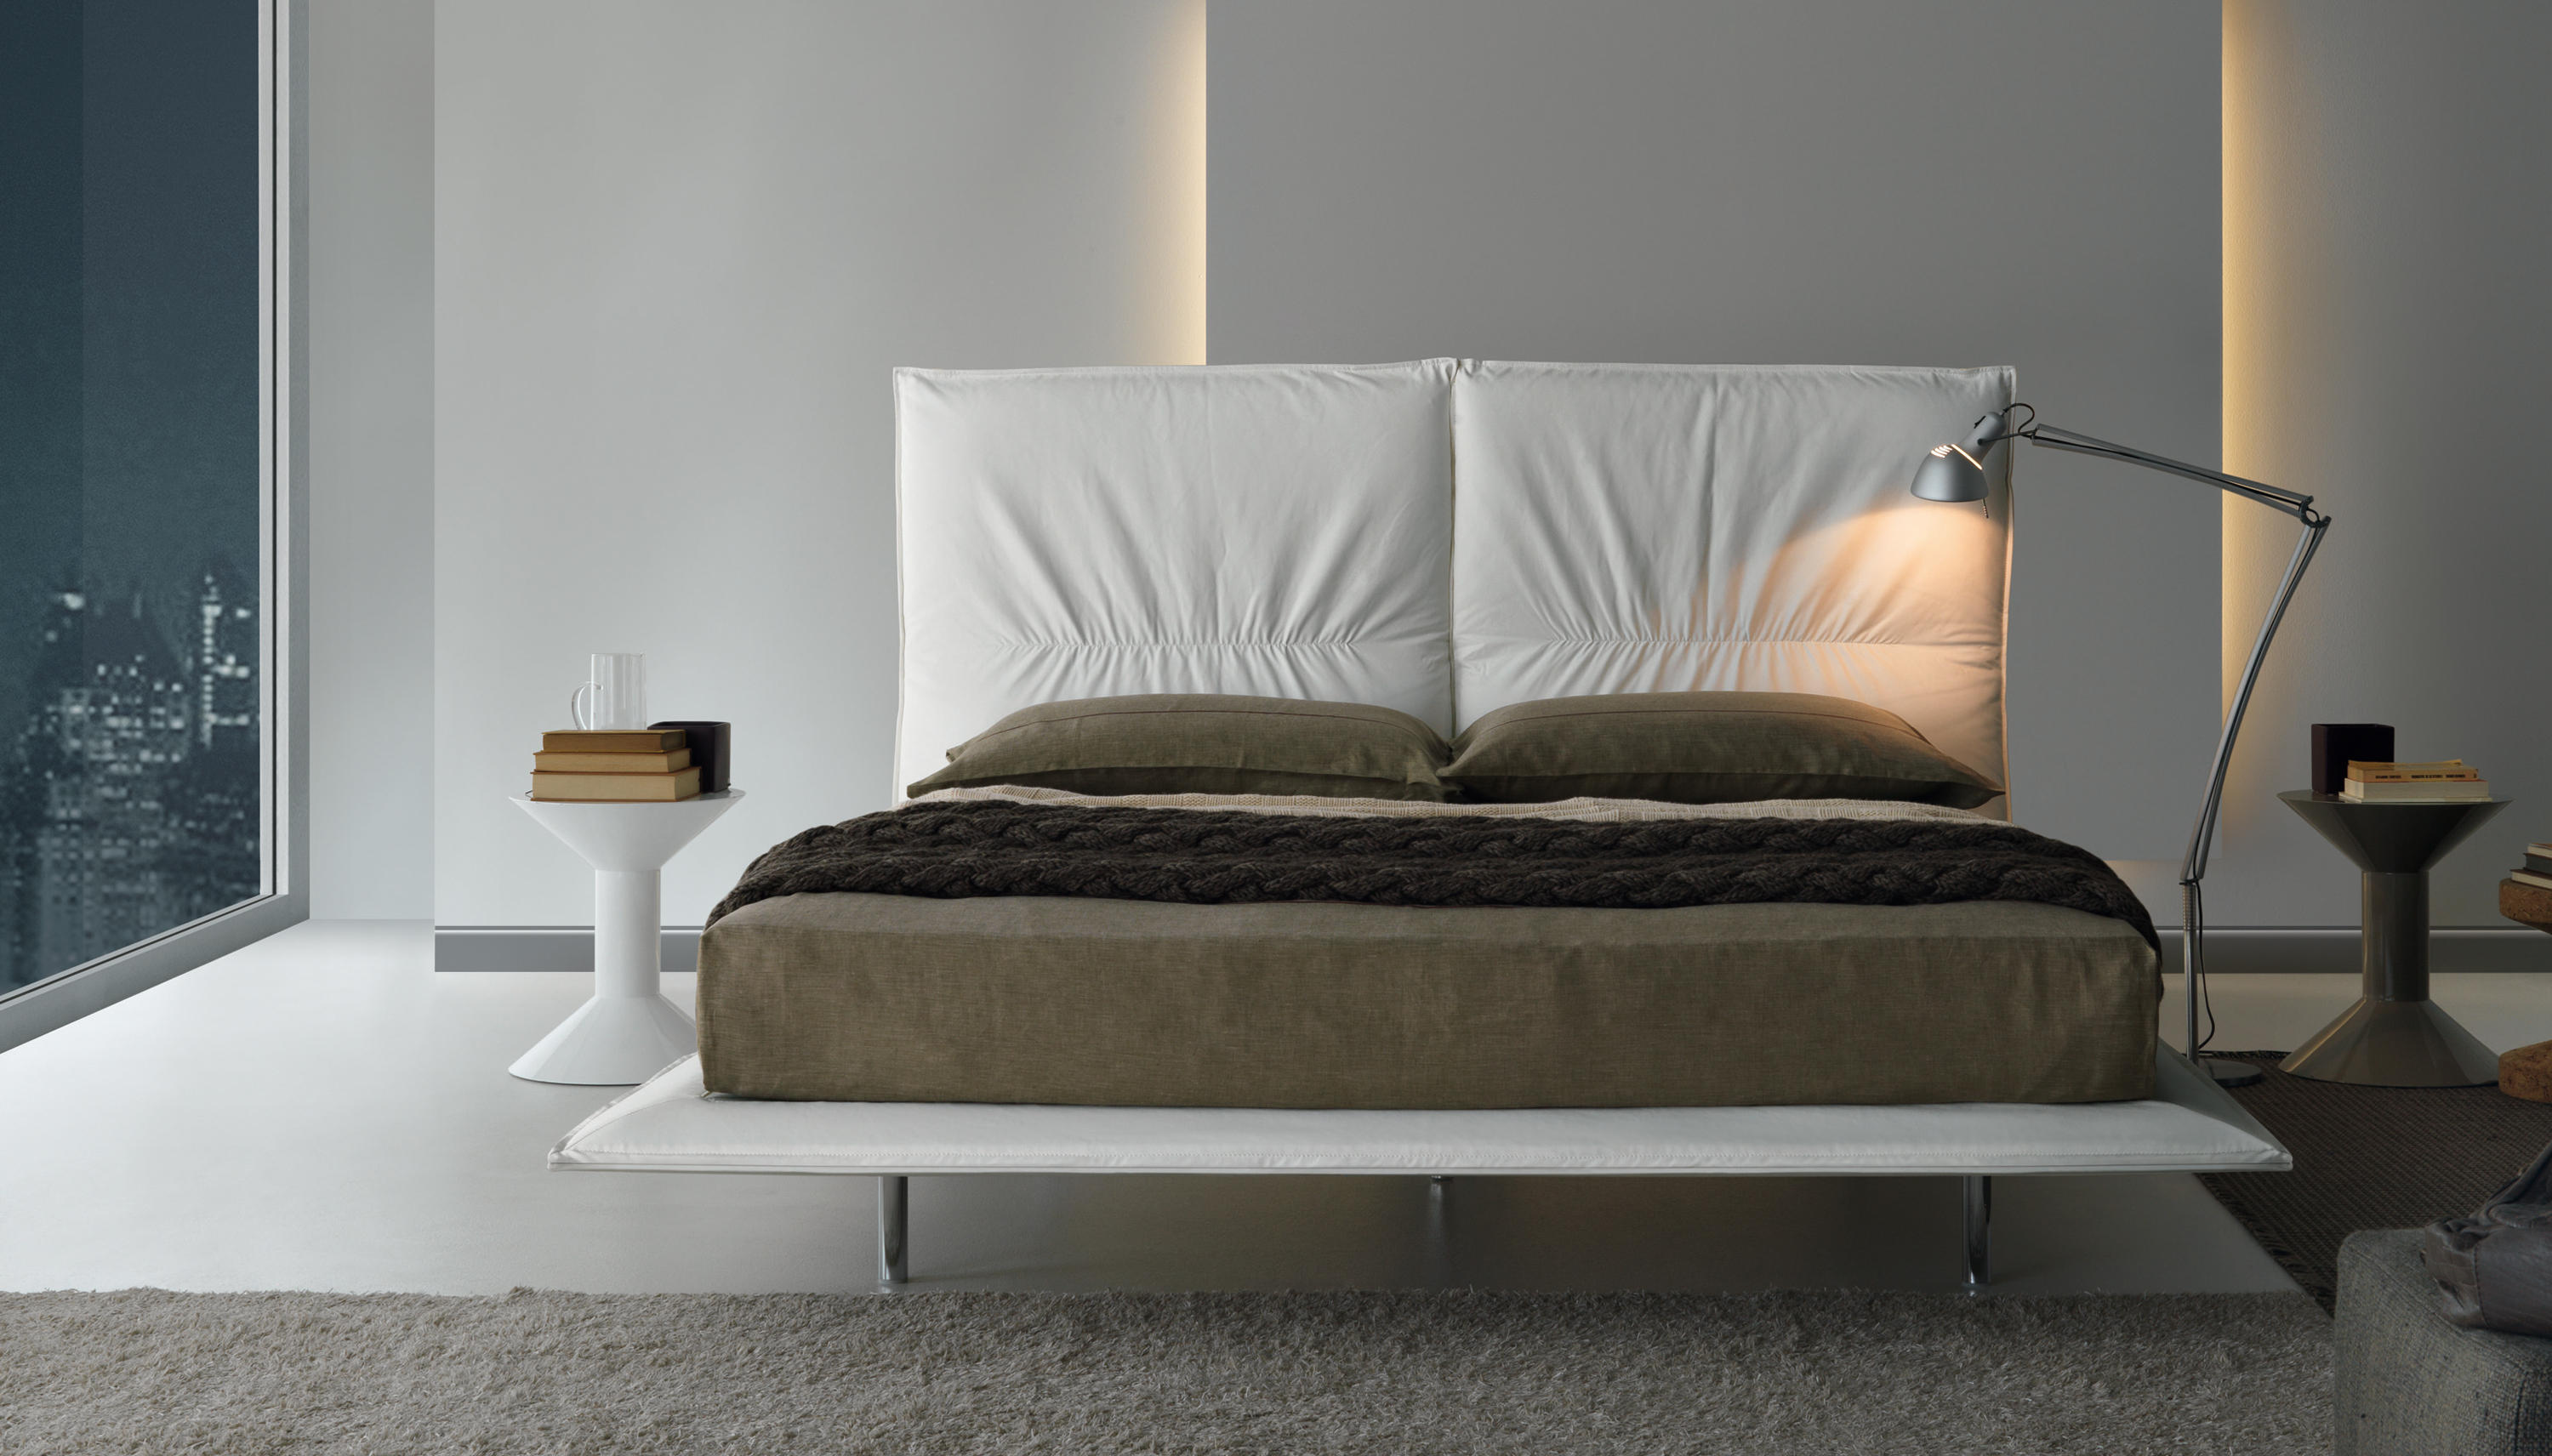 Pretty double beds from misura emme architonic for Misuraemme bed